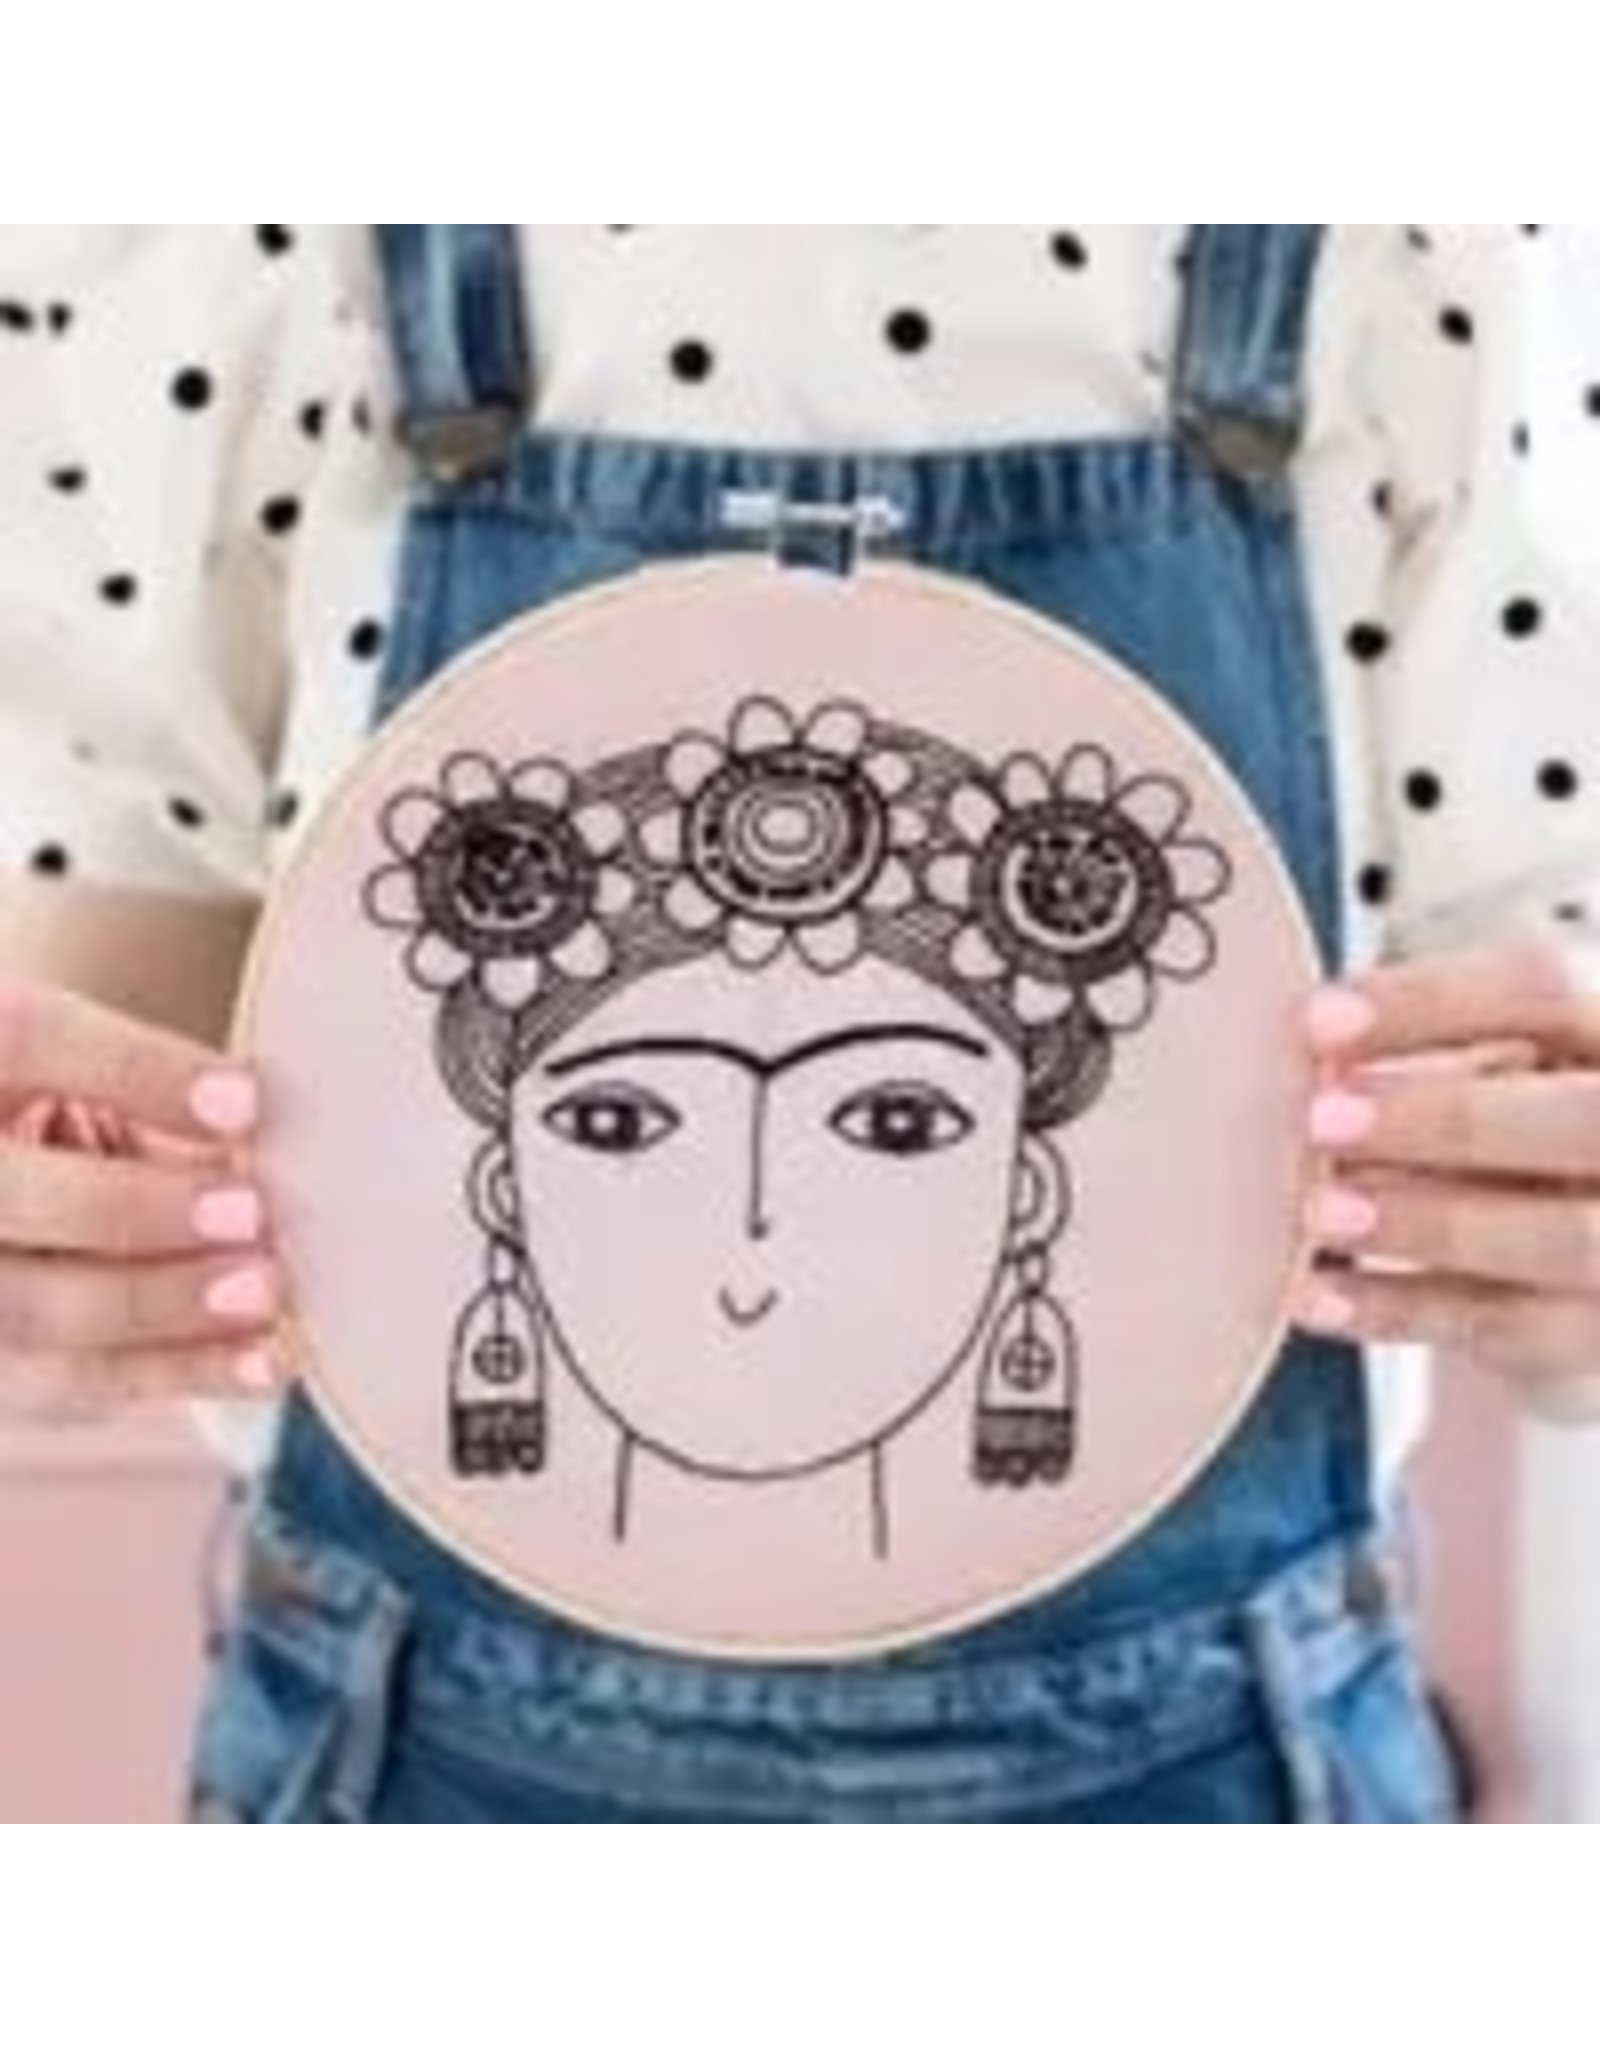 The Florist & The Merchant Frida Kahlo Embroidery Kit by Jane Foster